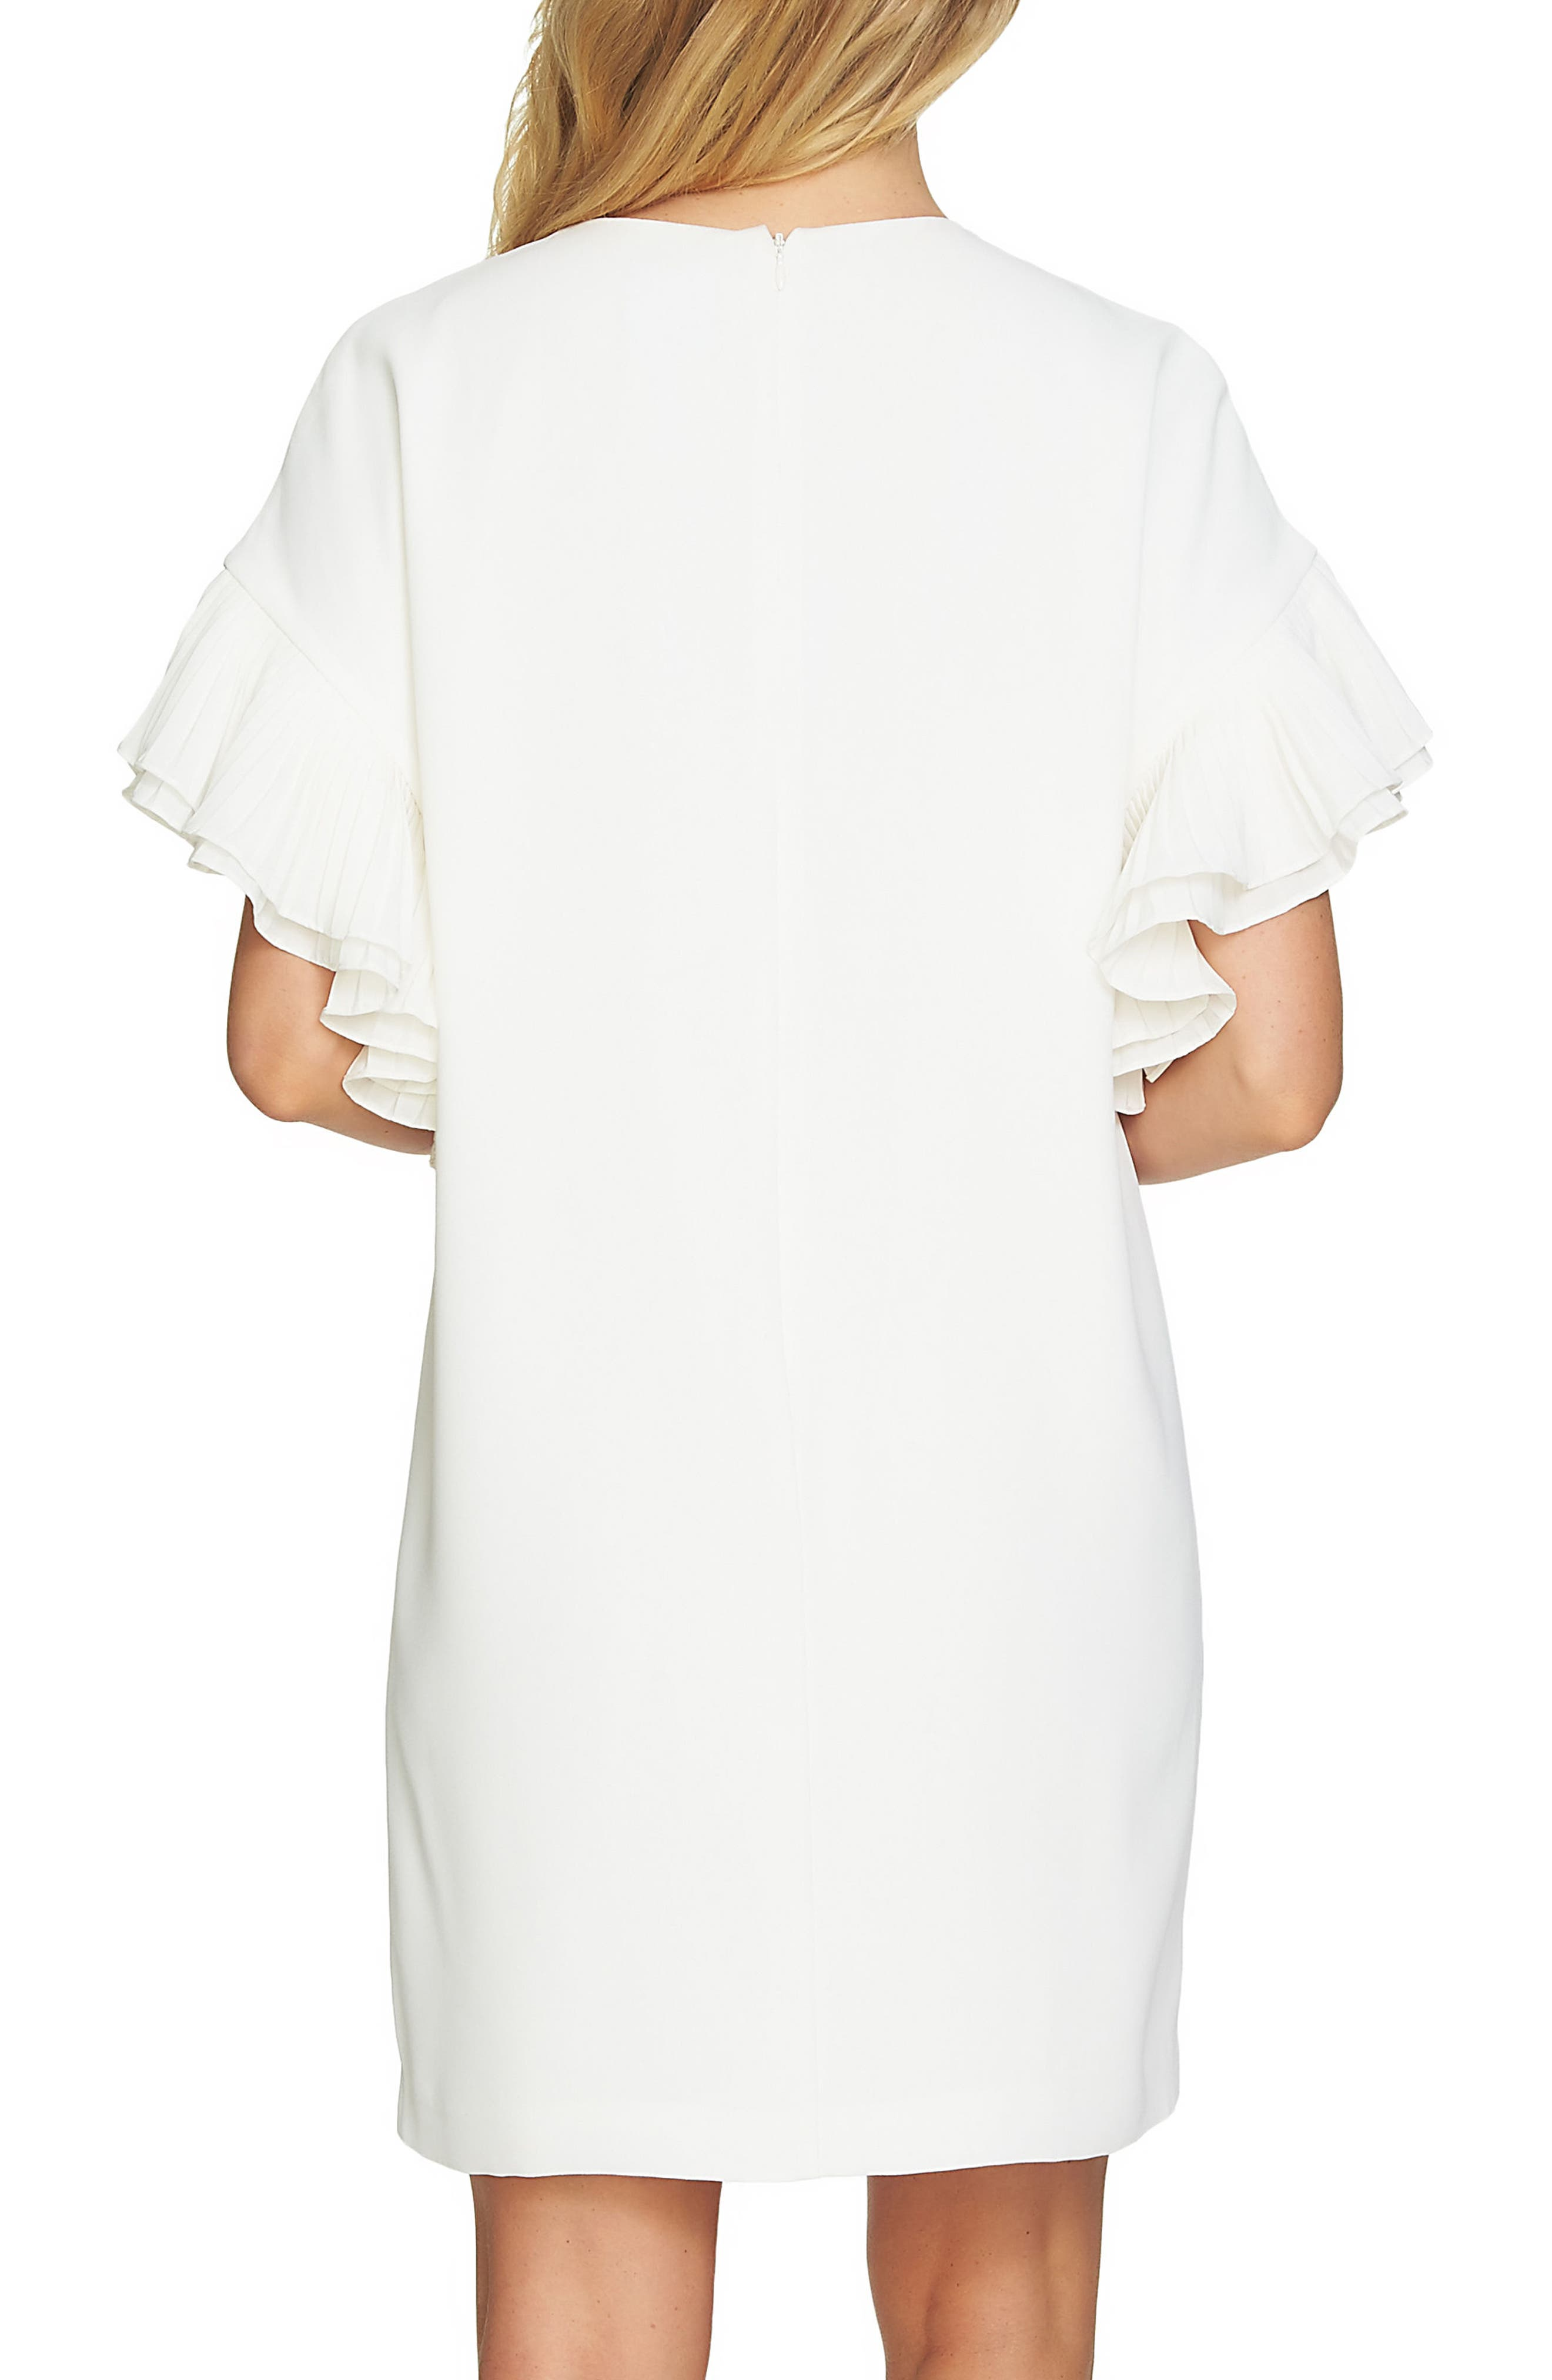 Tiered Pleated Crepe Shift Dress,                             Alternate thumbnail 2, color,                             Antique White